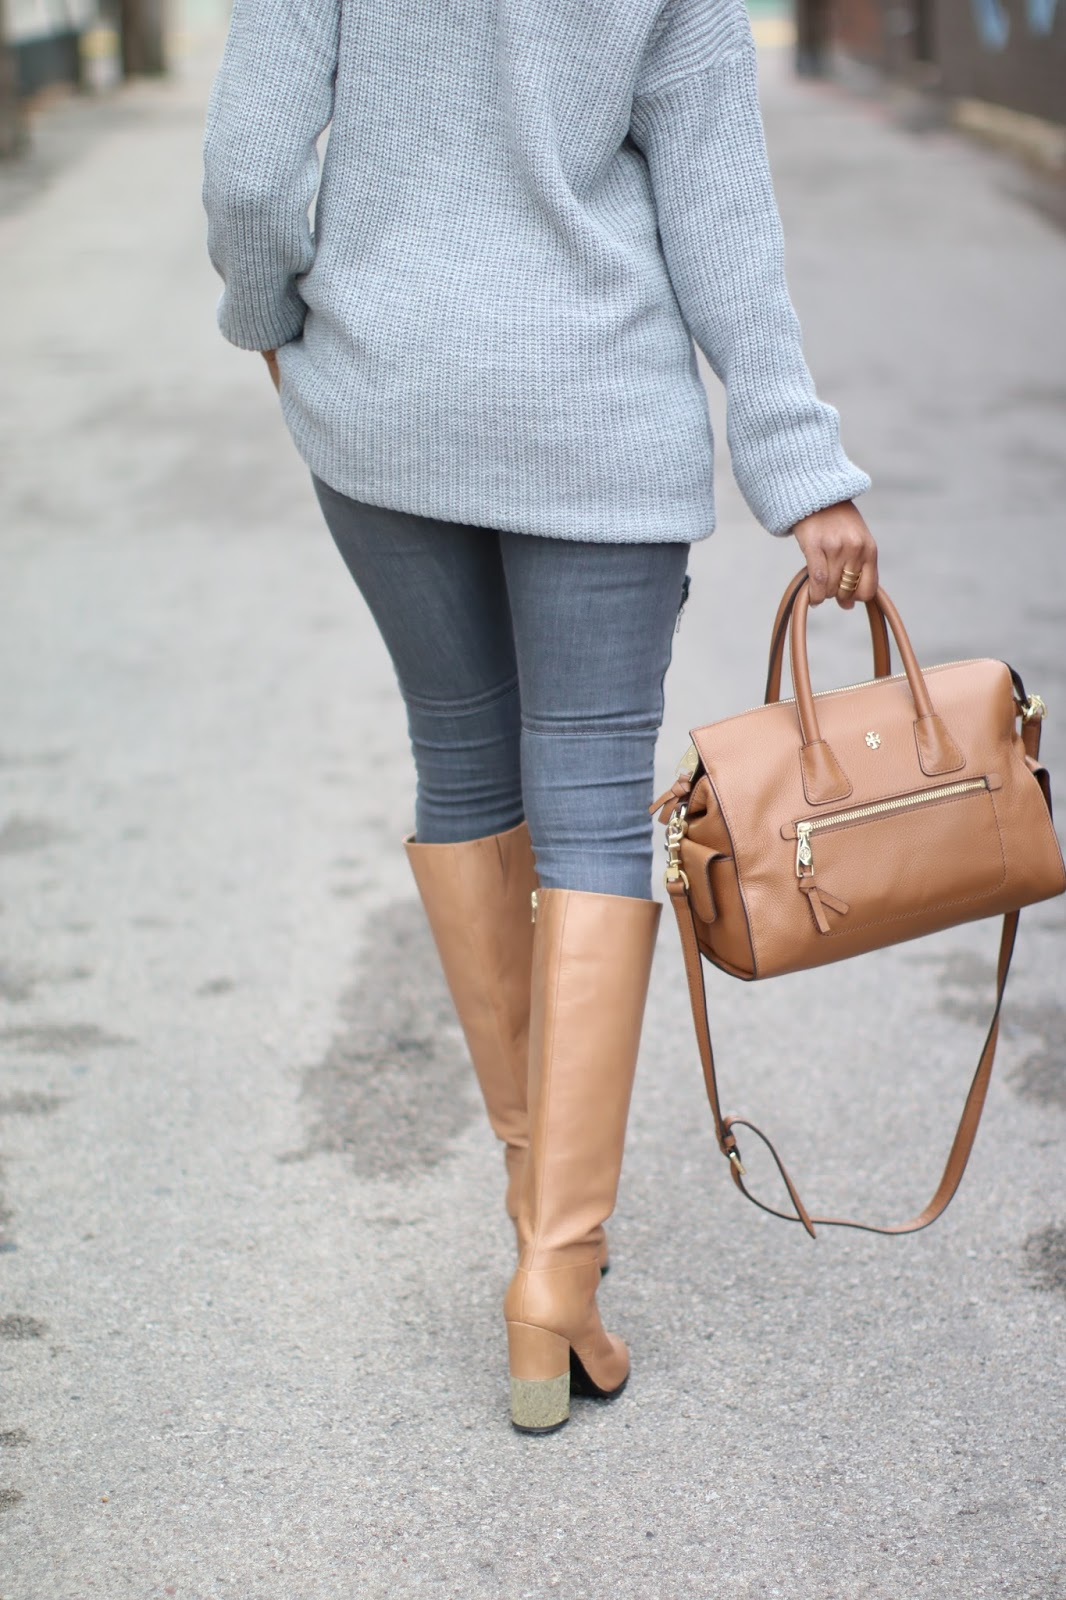 off shoulder sweater, missguided sweater, paige moto jeans, aldo vitaly boot, gray and camel outfit, tory burch robinson tote, camel knee boots, dallas blogger, fashion blogger, black girl blogger,